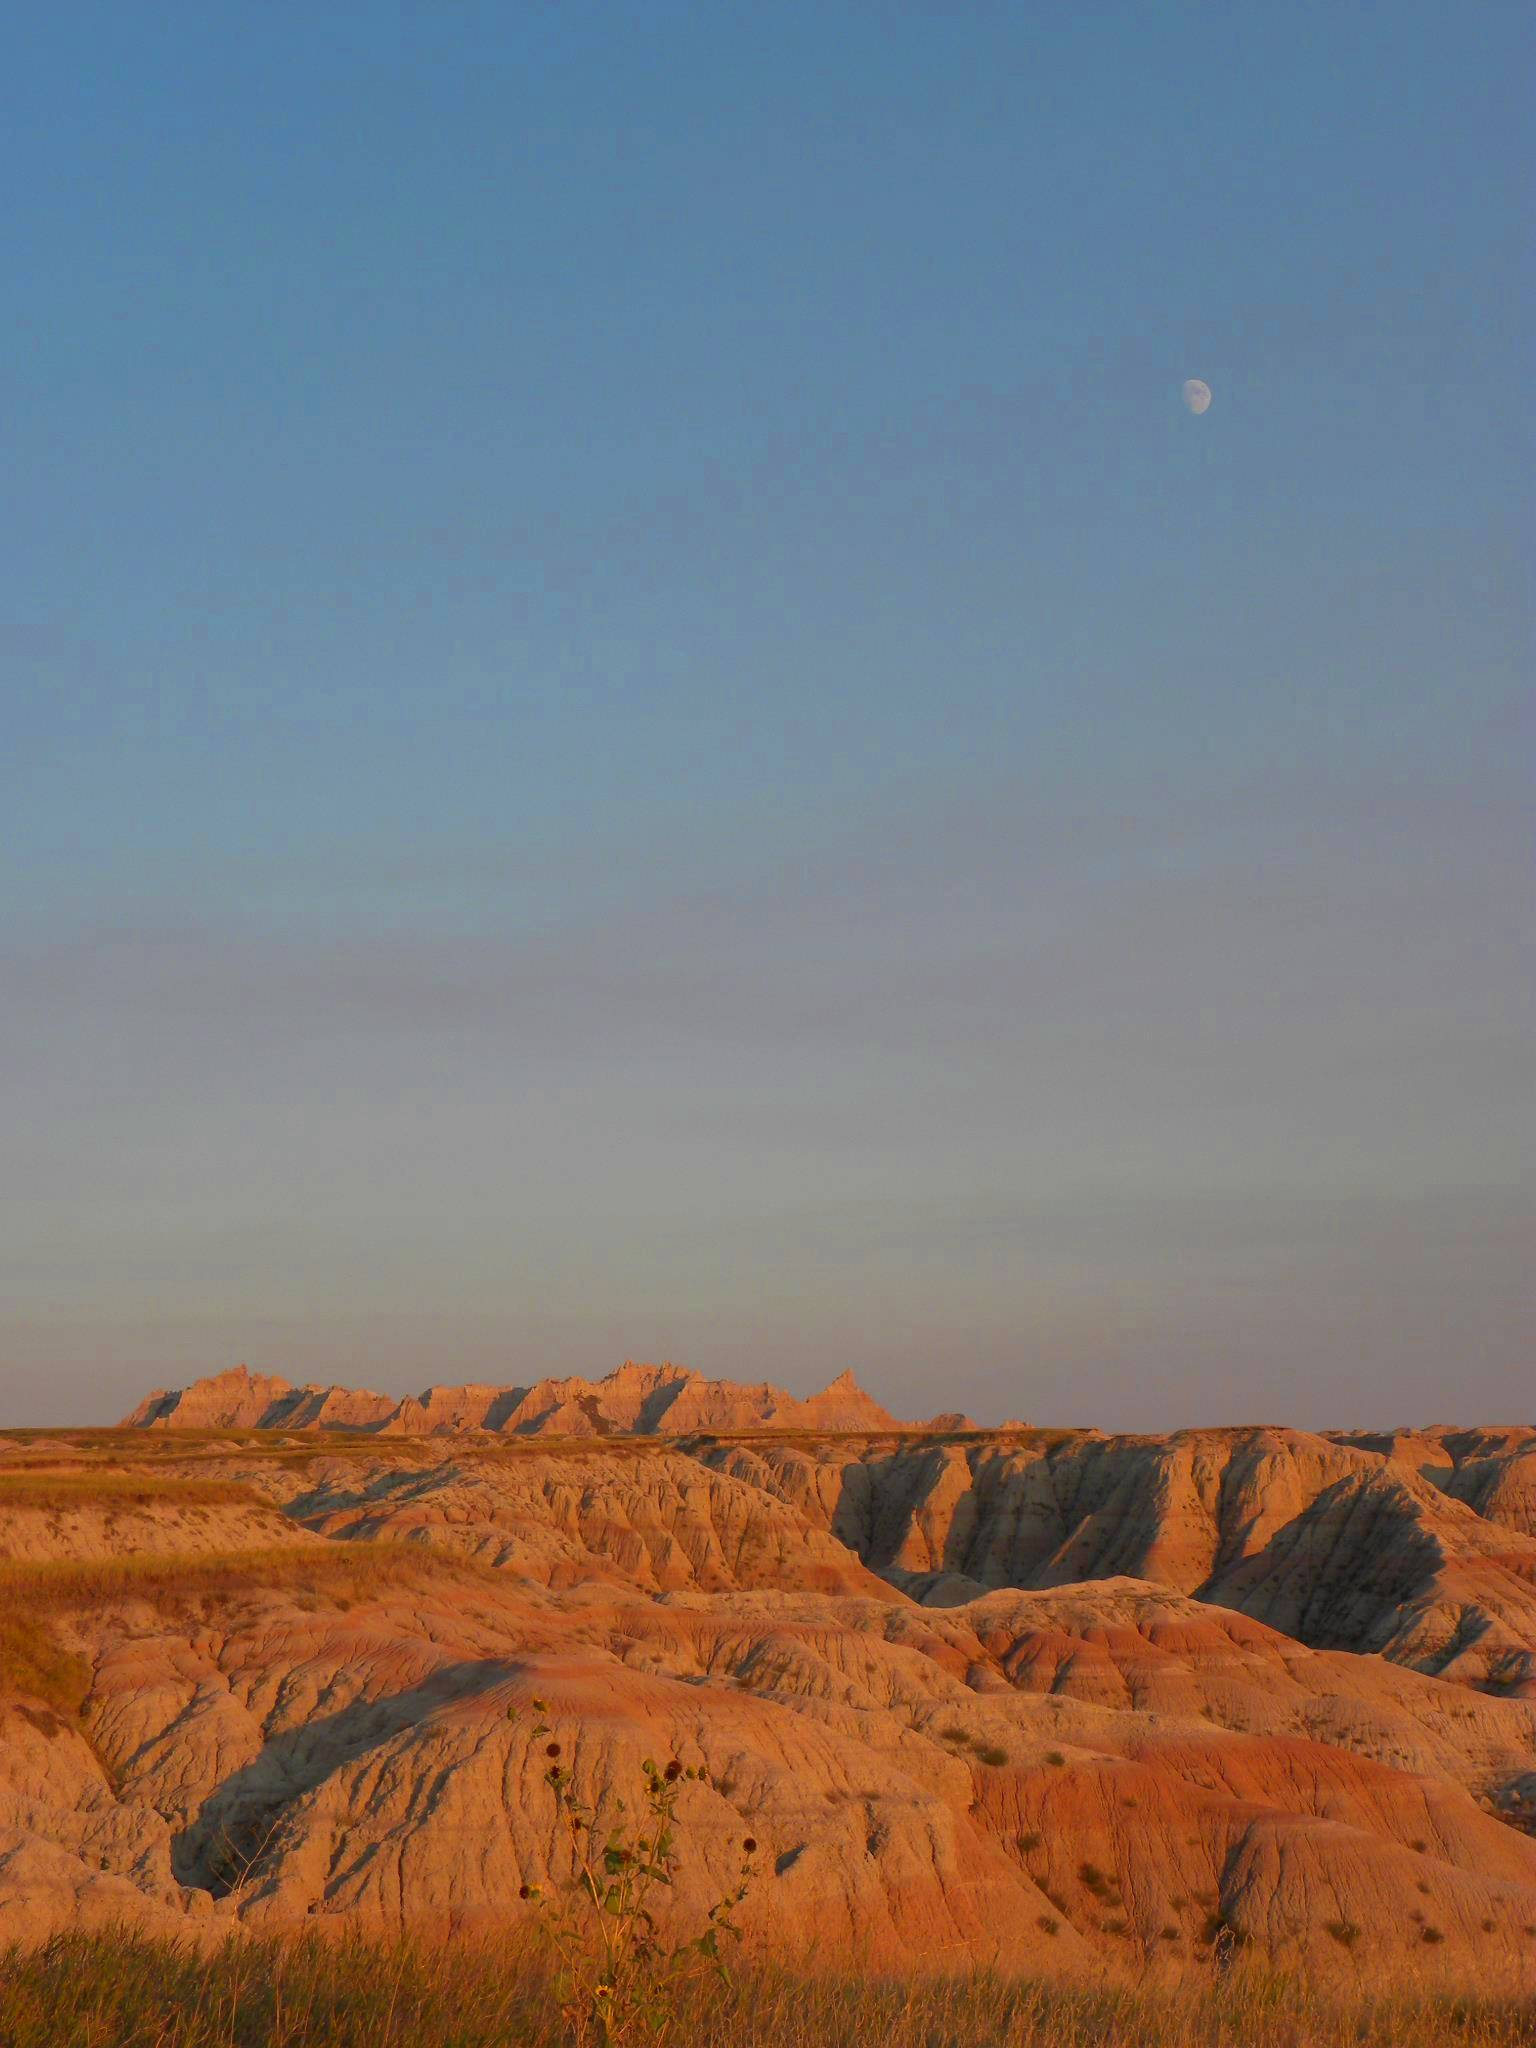 Moon Rising Over the Badlands